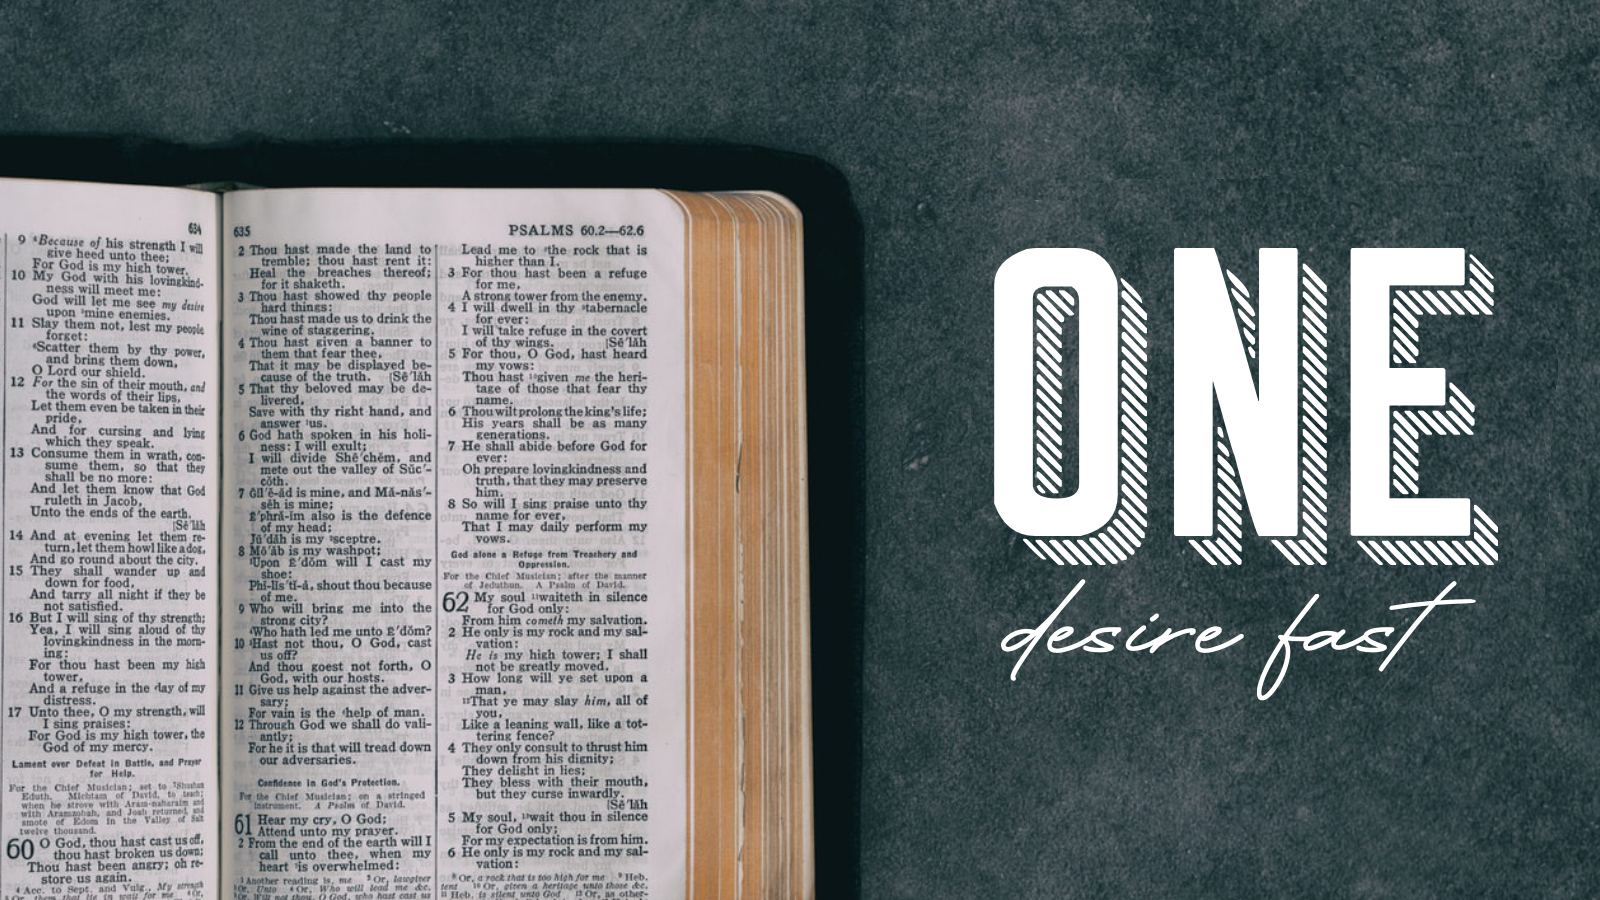 One Desire Fast – Part 1: Jesus Fasting